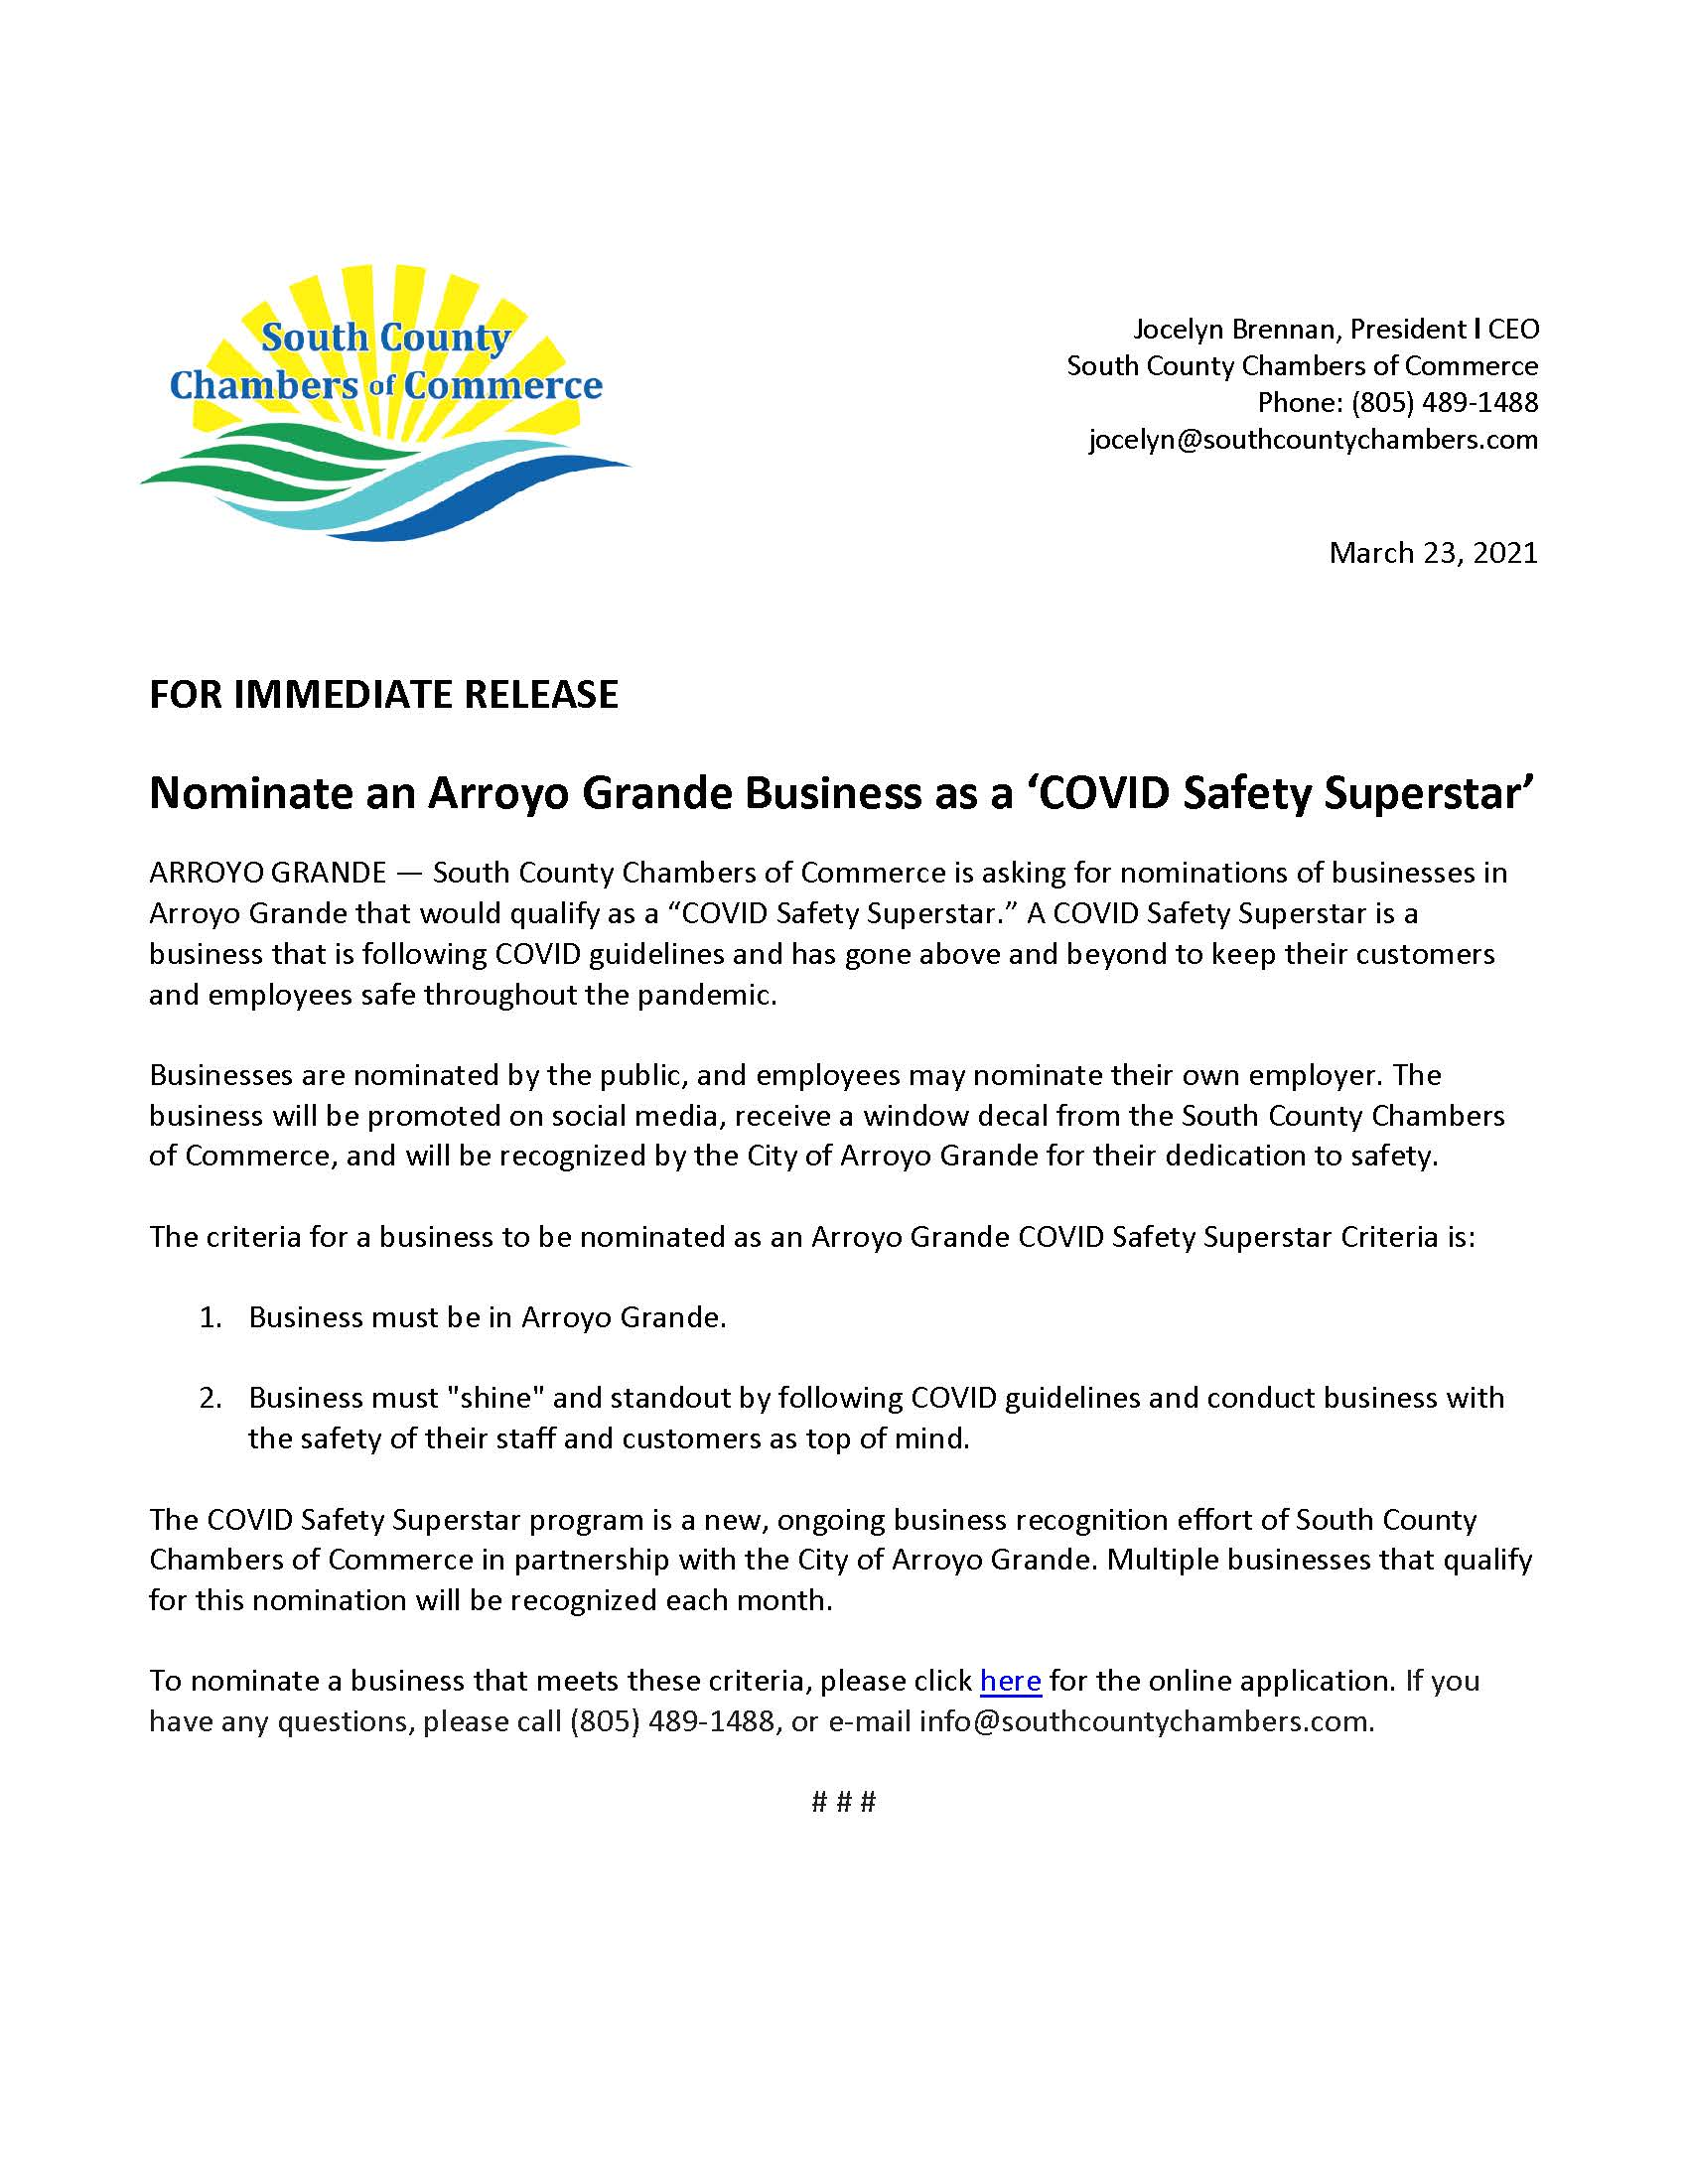 COVID Safety Superstar press release 3-23-21